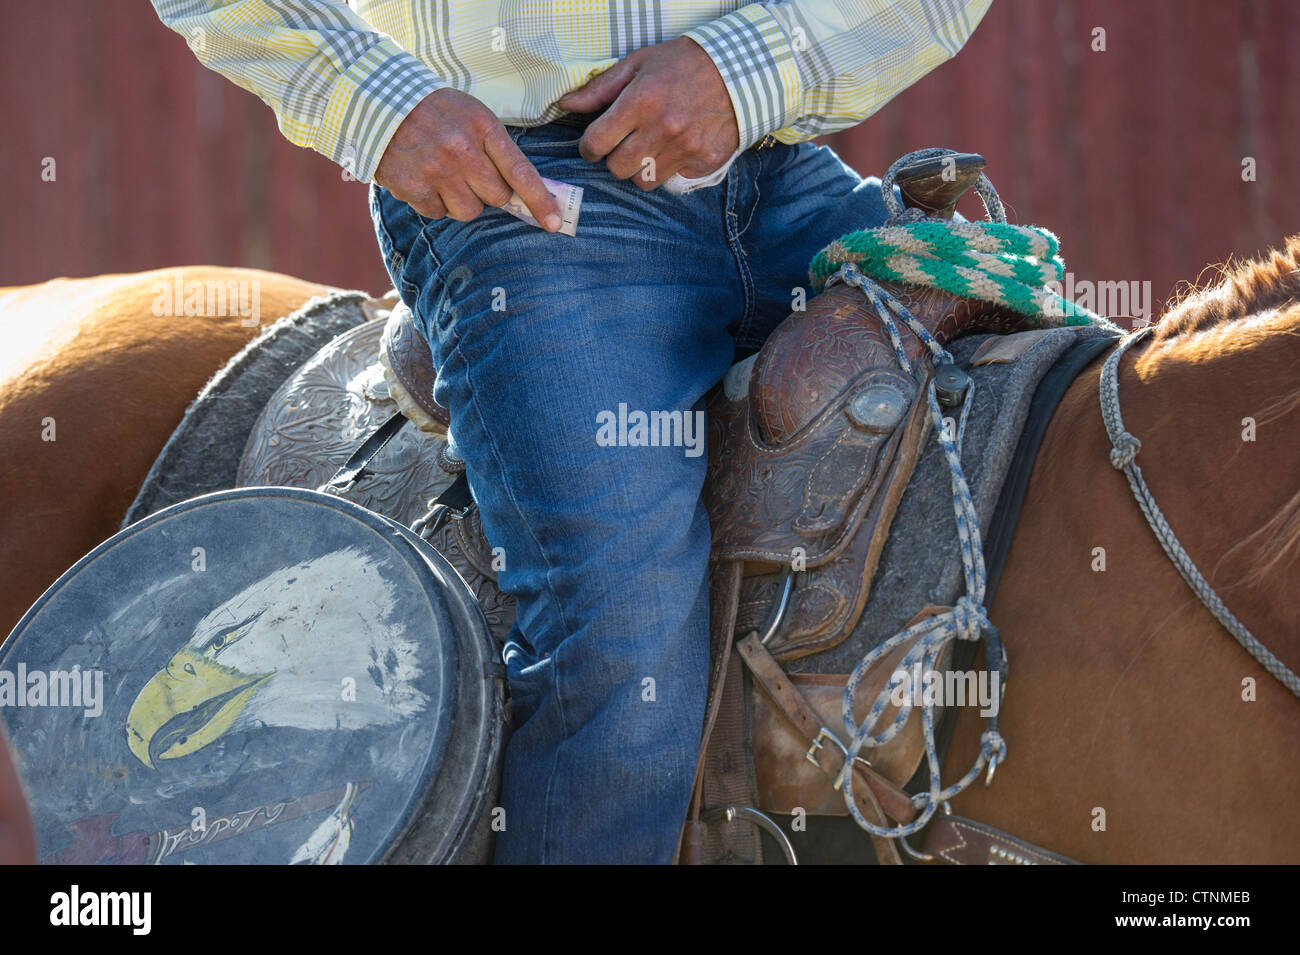 Native cowboy with a vintage western americana lariat lasso galvanized tin carry case in the warm-up arena at the - Stock Image